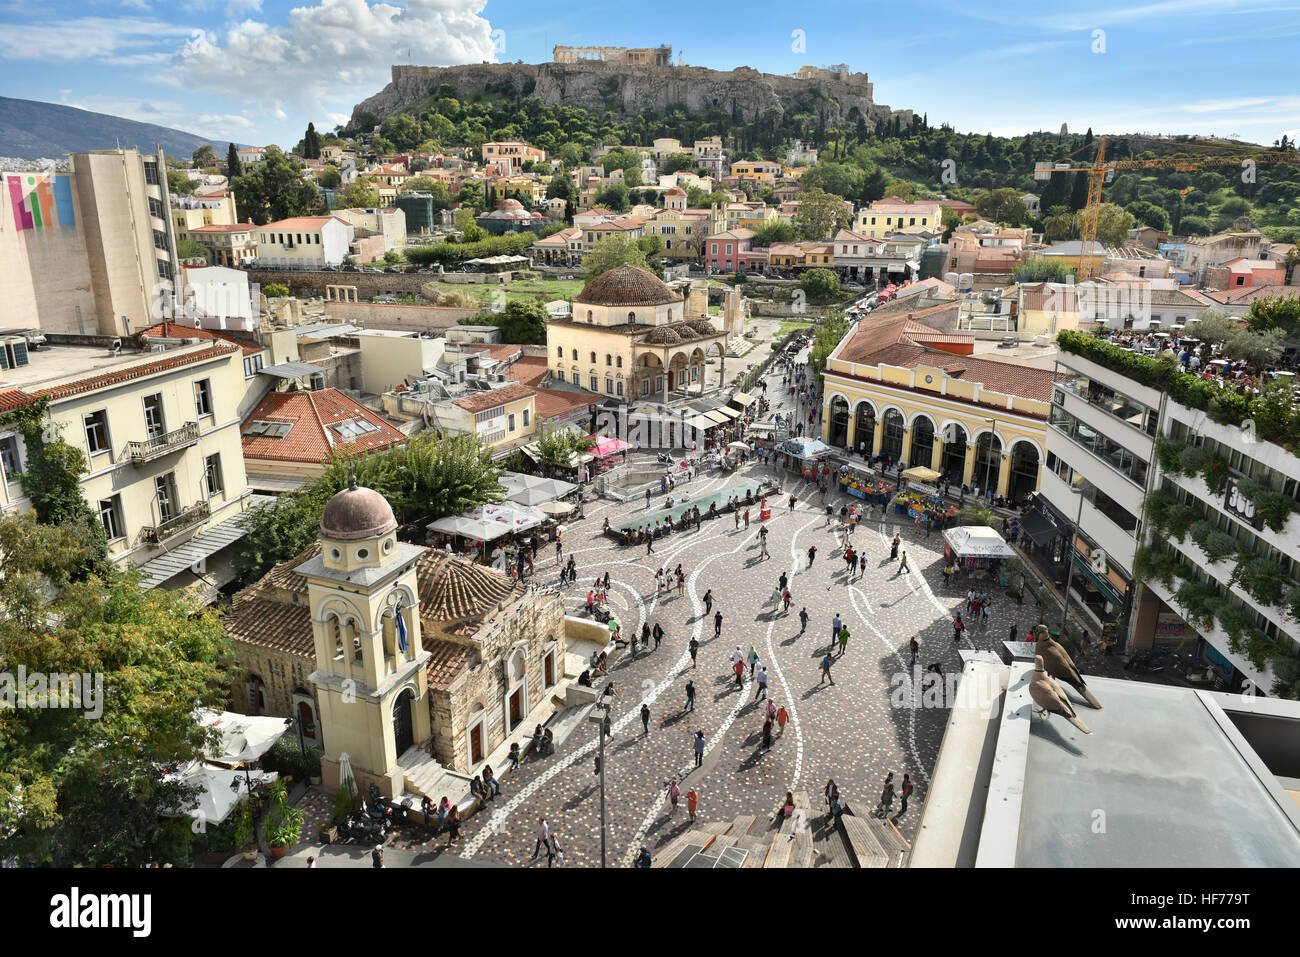 ATHENS, GREECE - OCT. 2015: Monastiraki square's aerial view. Located on Ermou Street, this is a flea market - Stock Image